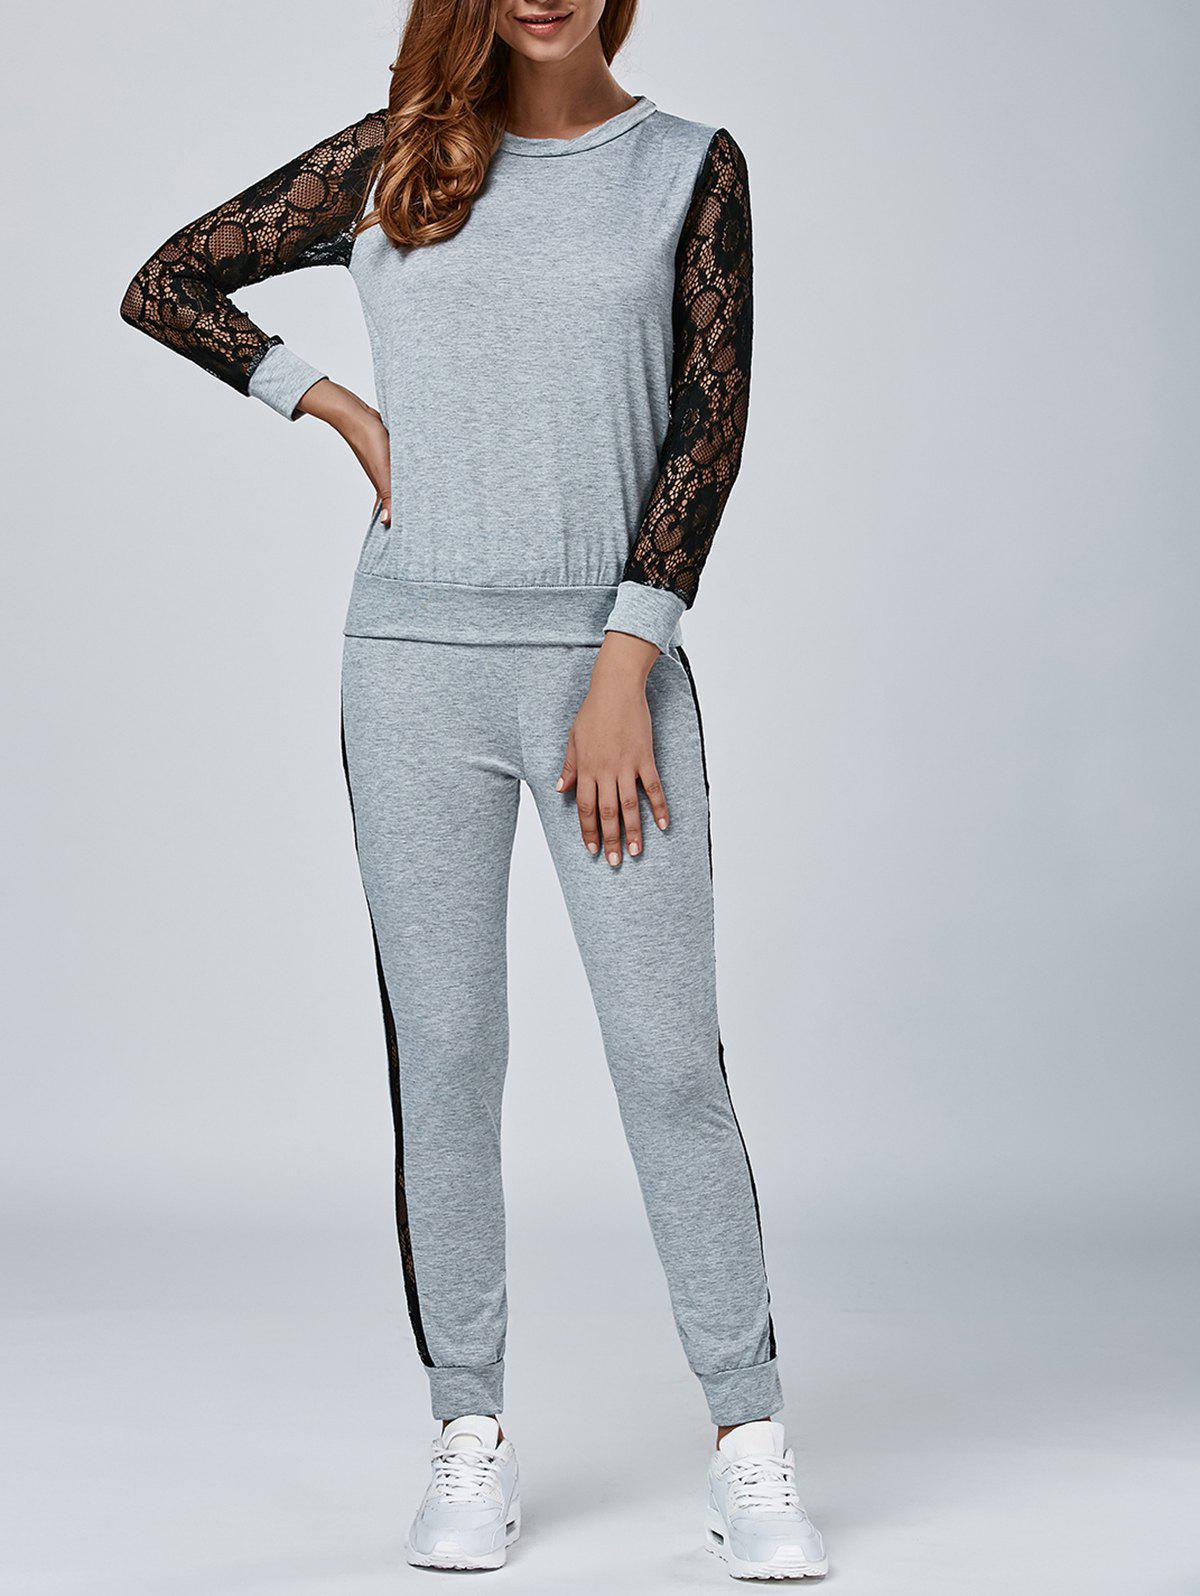 Chic Lace Splicing Sweatshirt with Pants